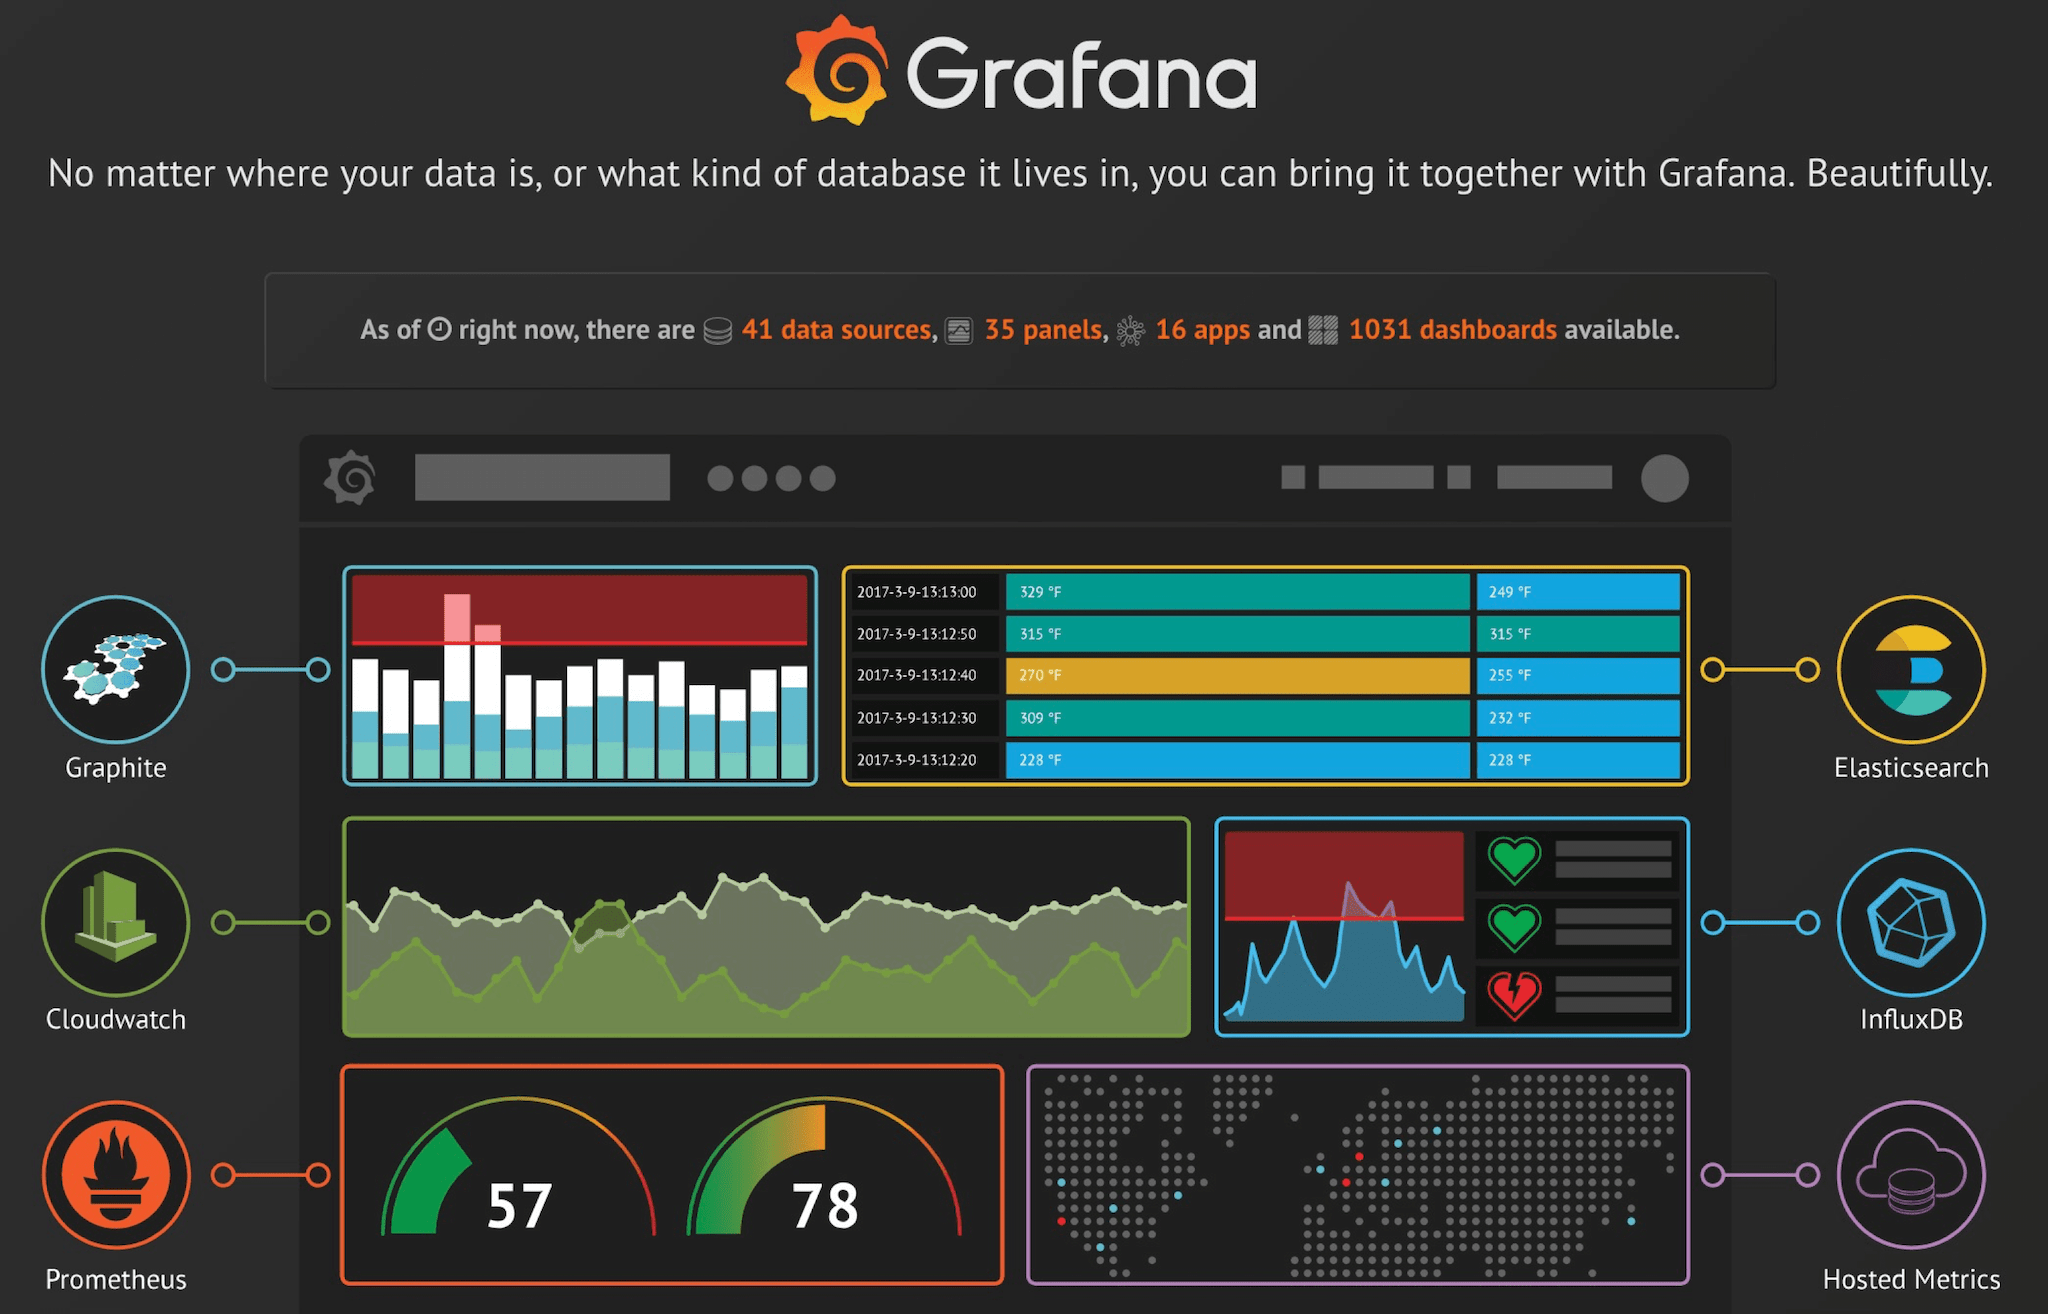 grafana_top.png